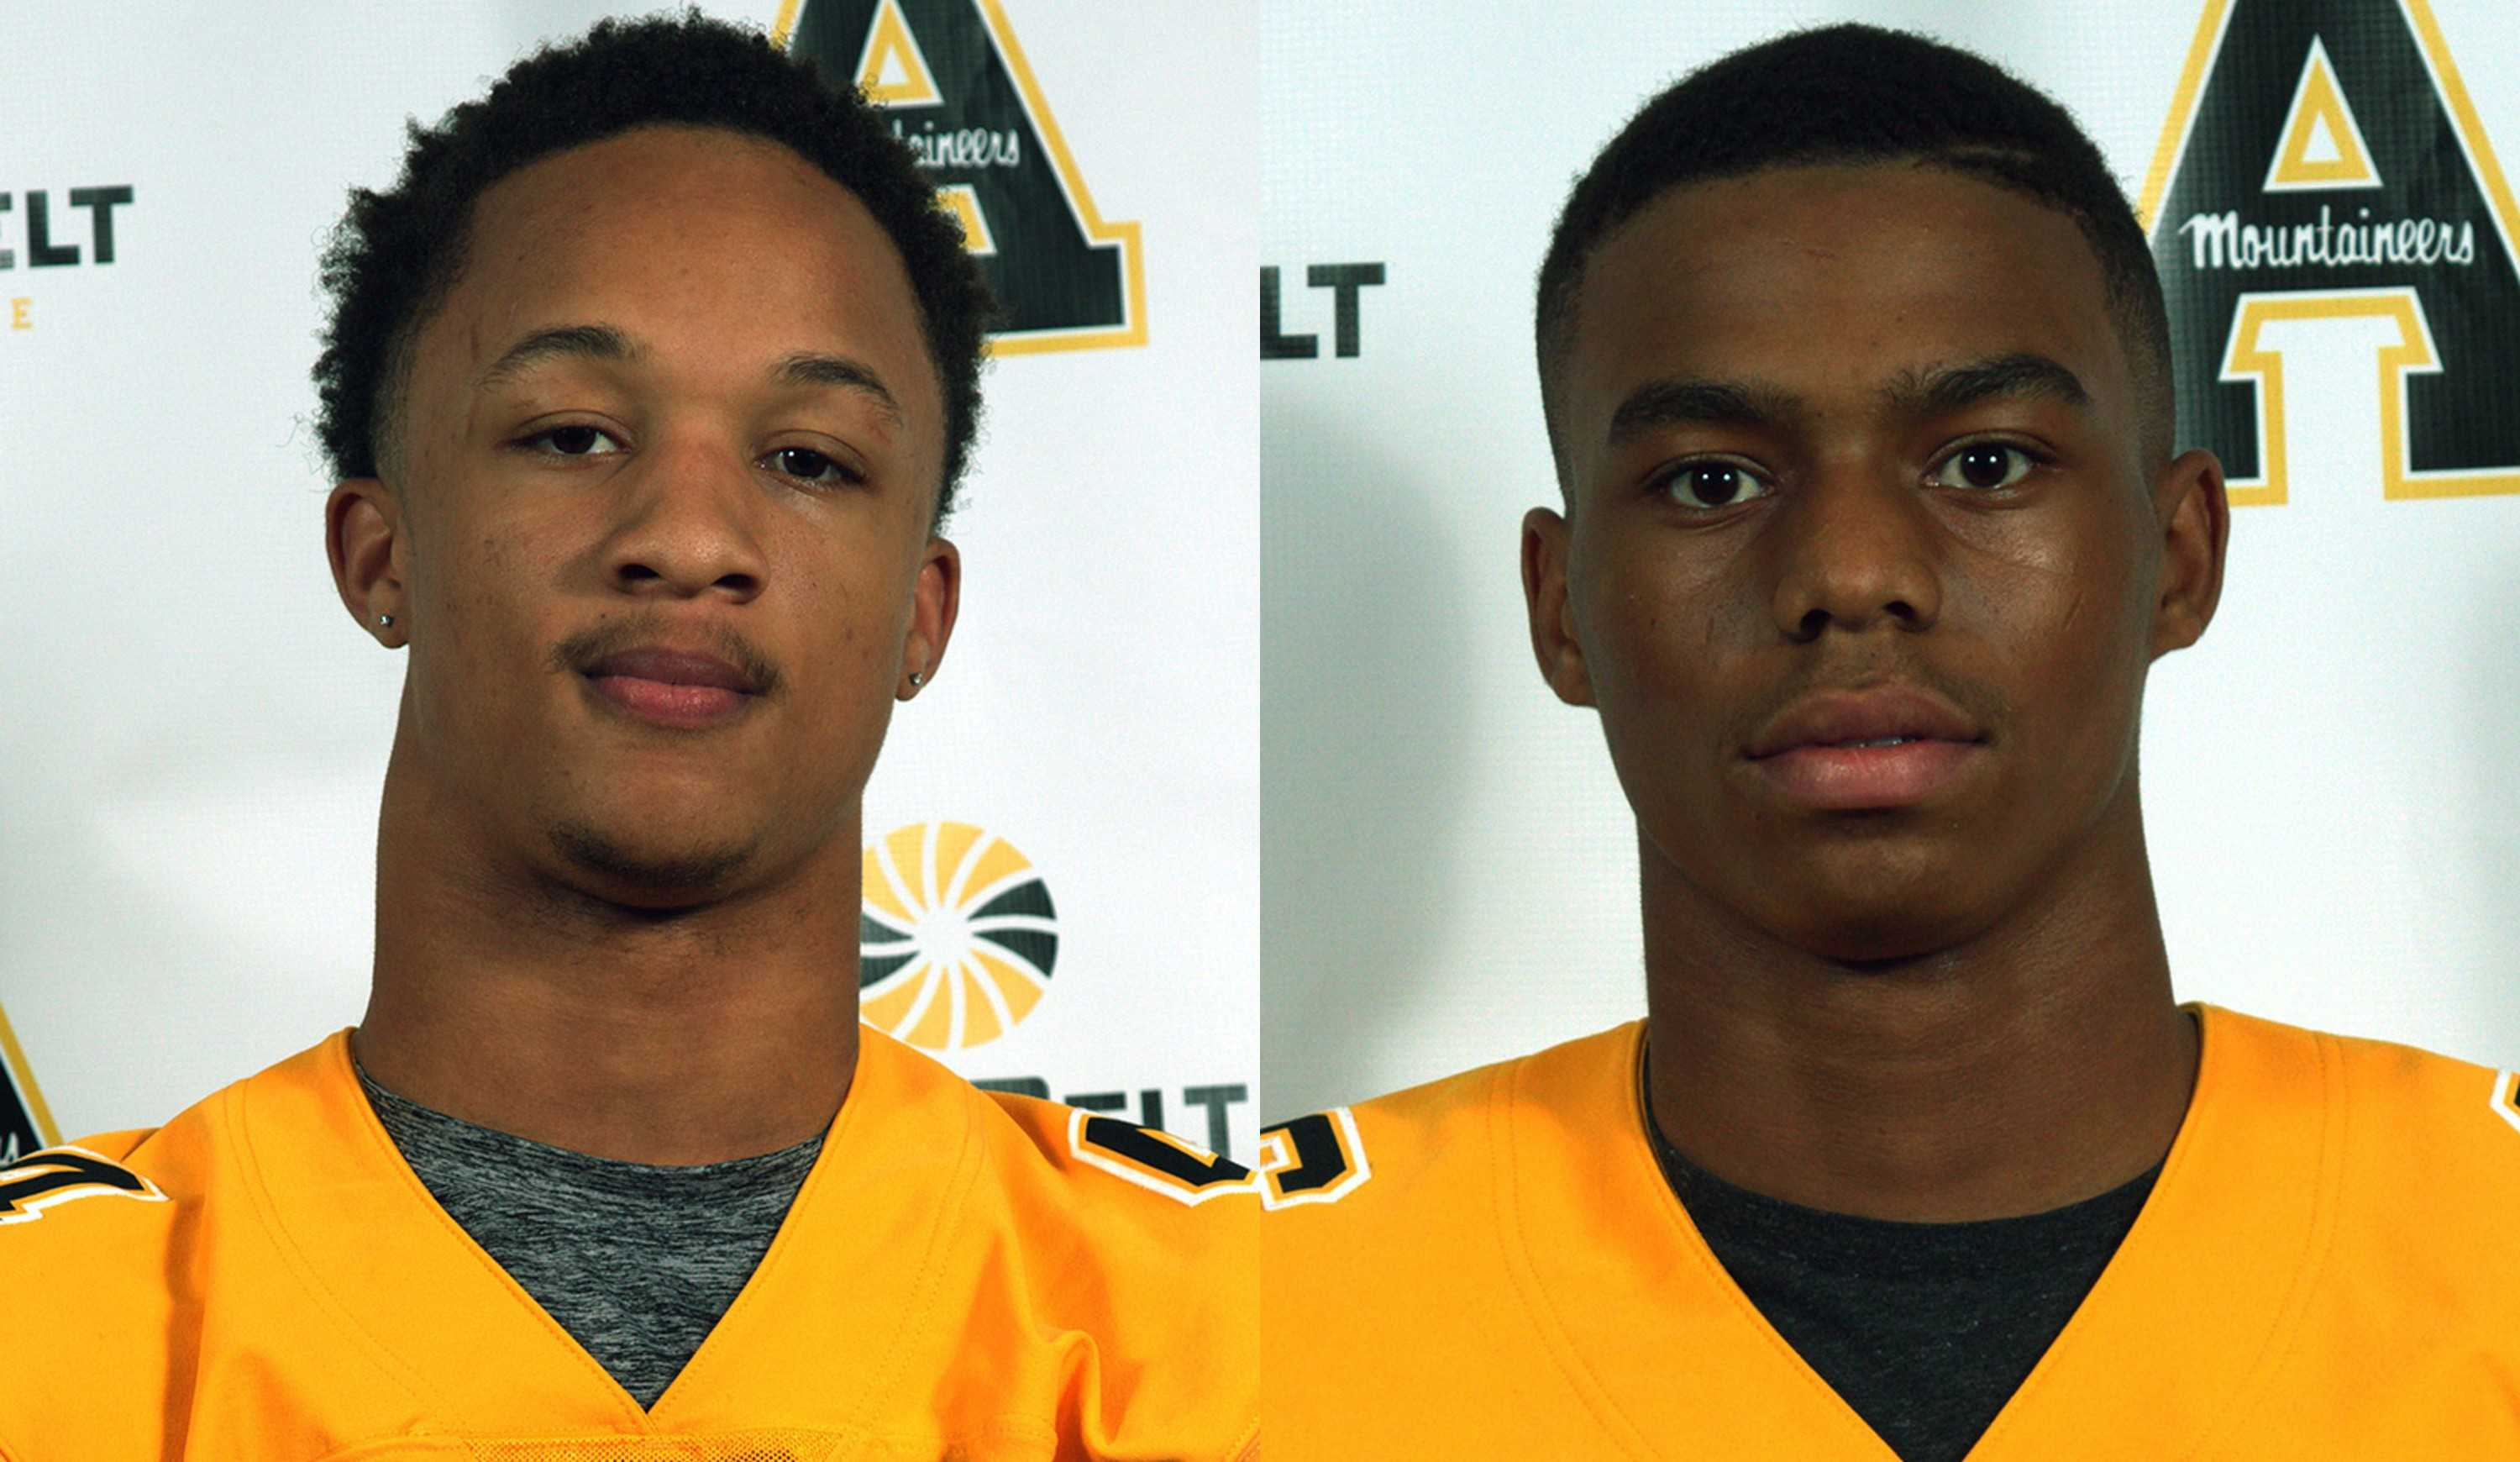 Clifton Duck (left) and Aris Duffey (right) are App State football's newest recruits. Duffey is rated as a three-star prospect and Duck is rated as a two-star prospect by Scout.com and 247Sports.com. Photo courtesy of Appalachian State Football.